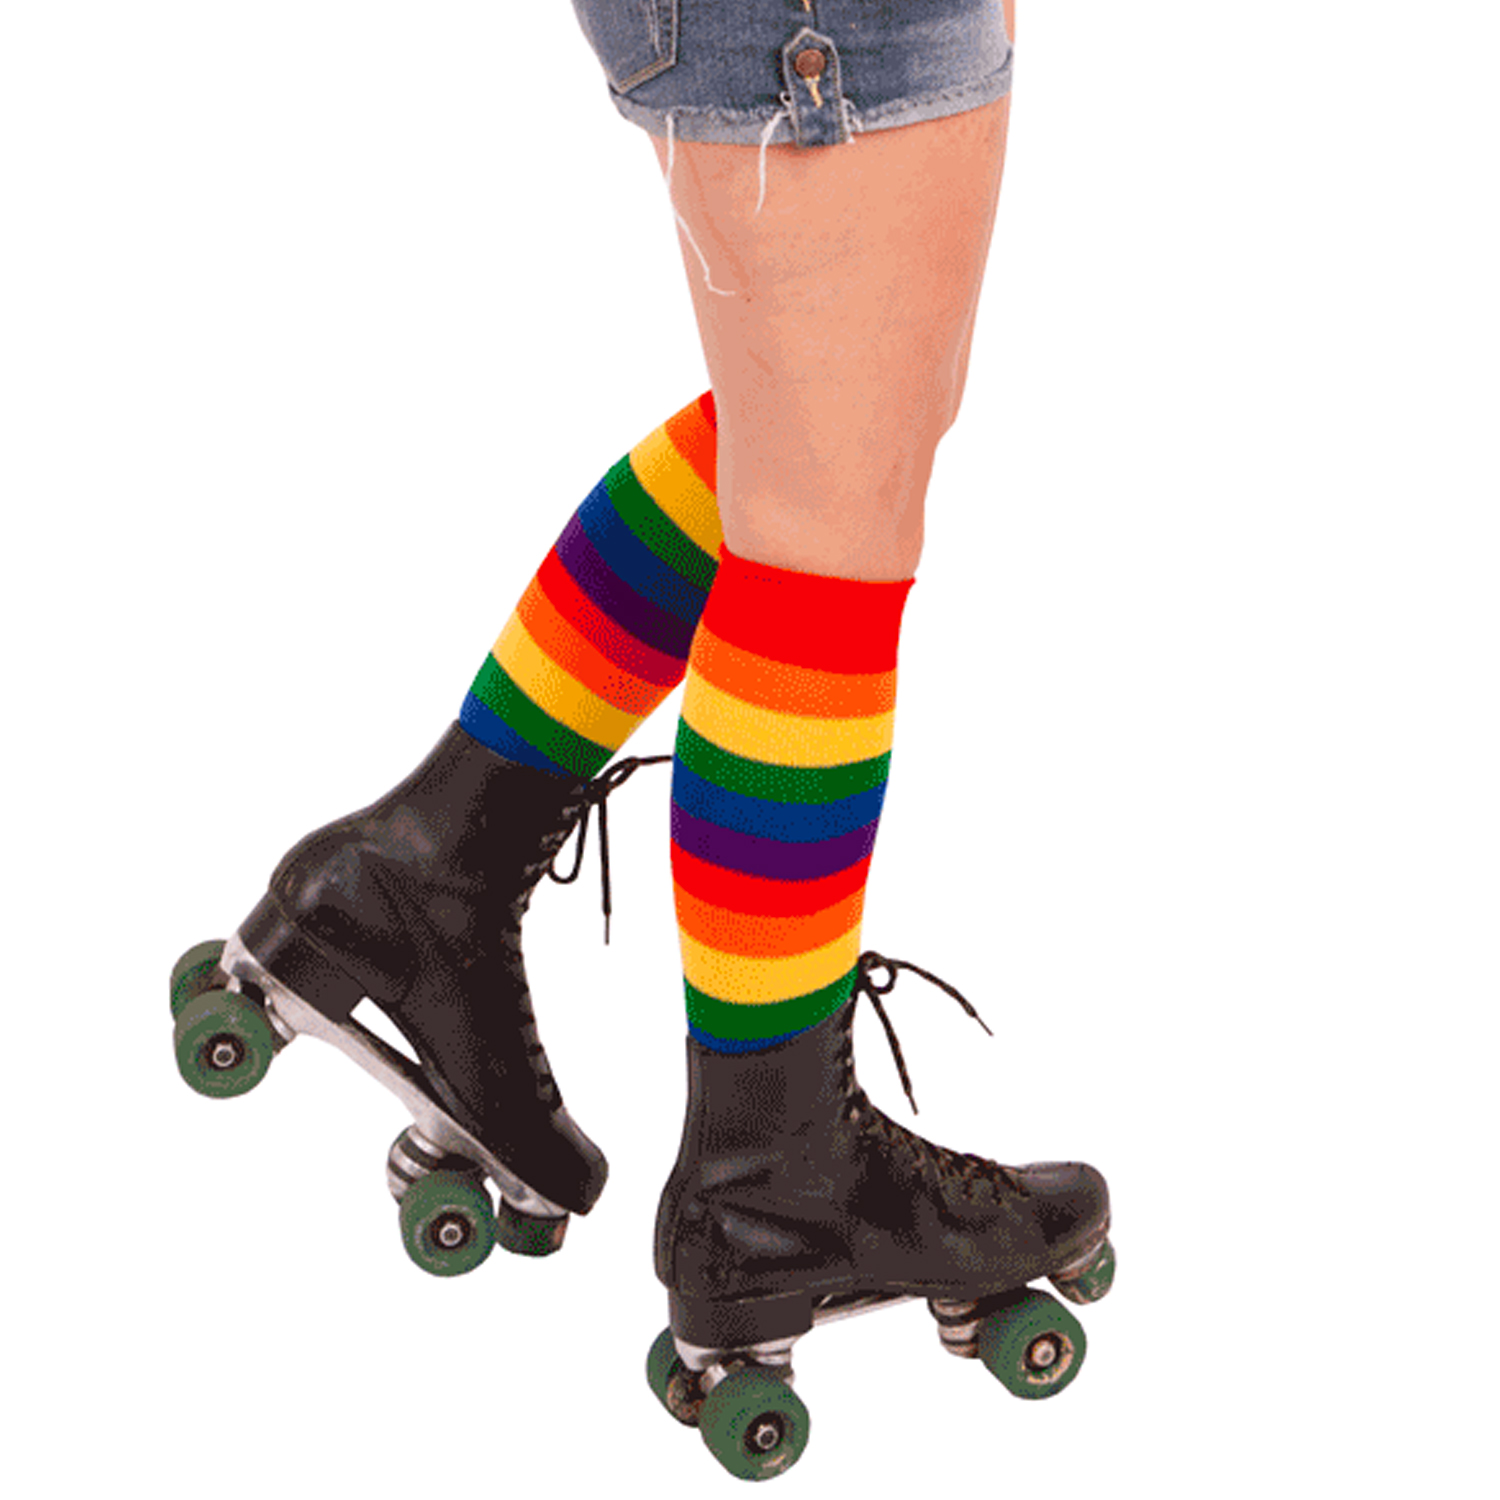 roller skating socks